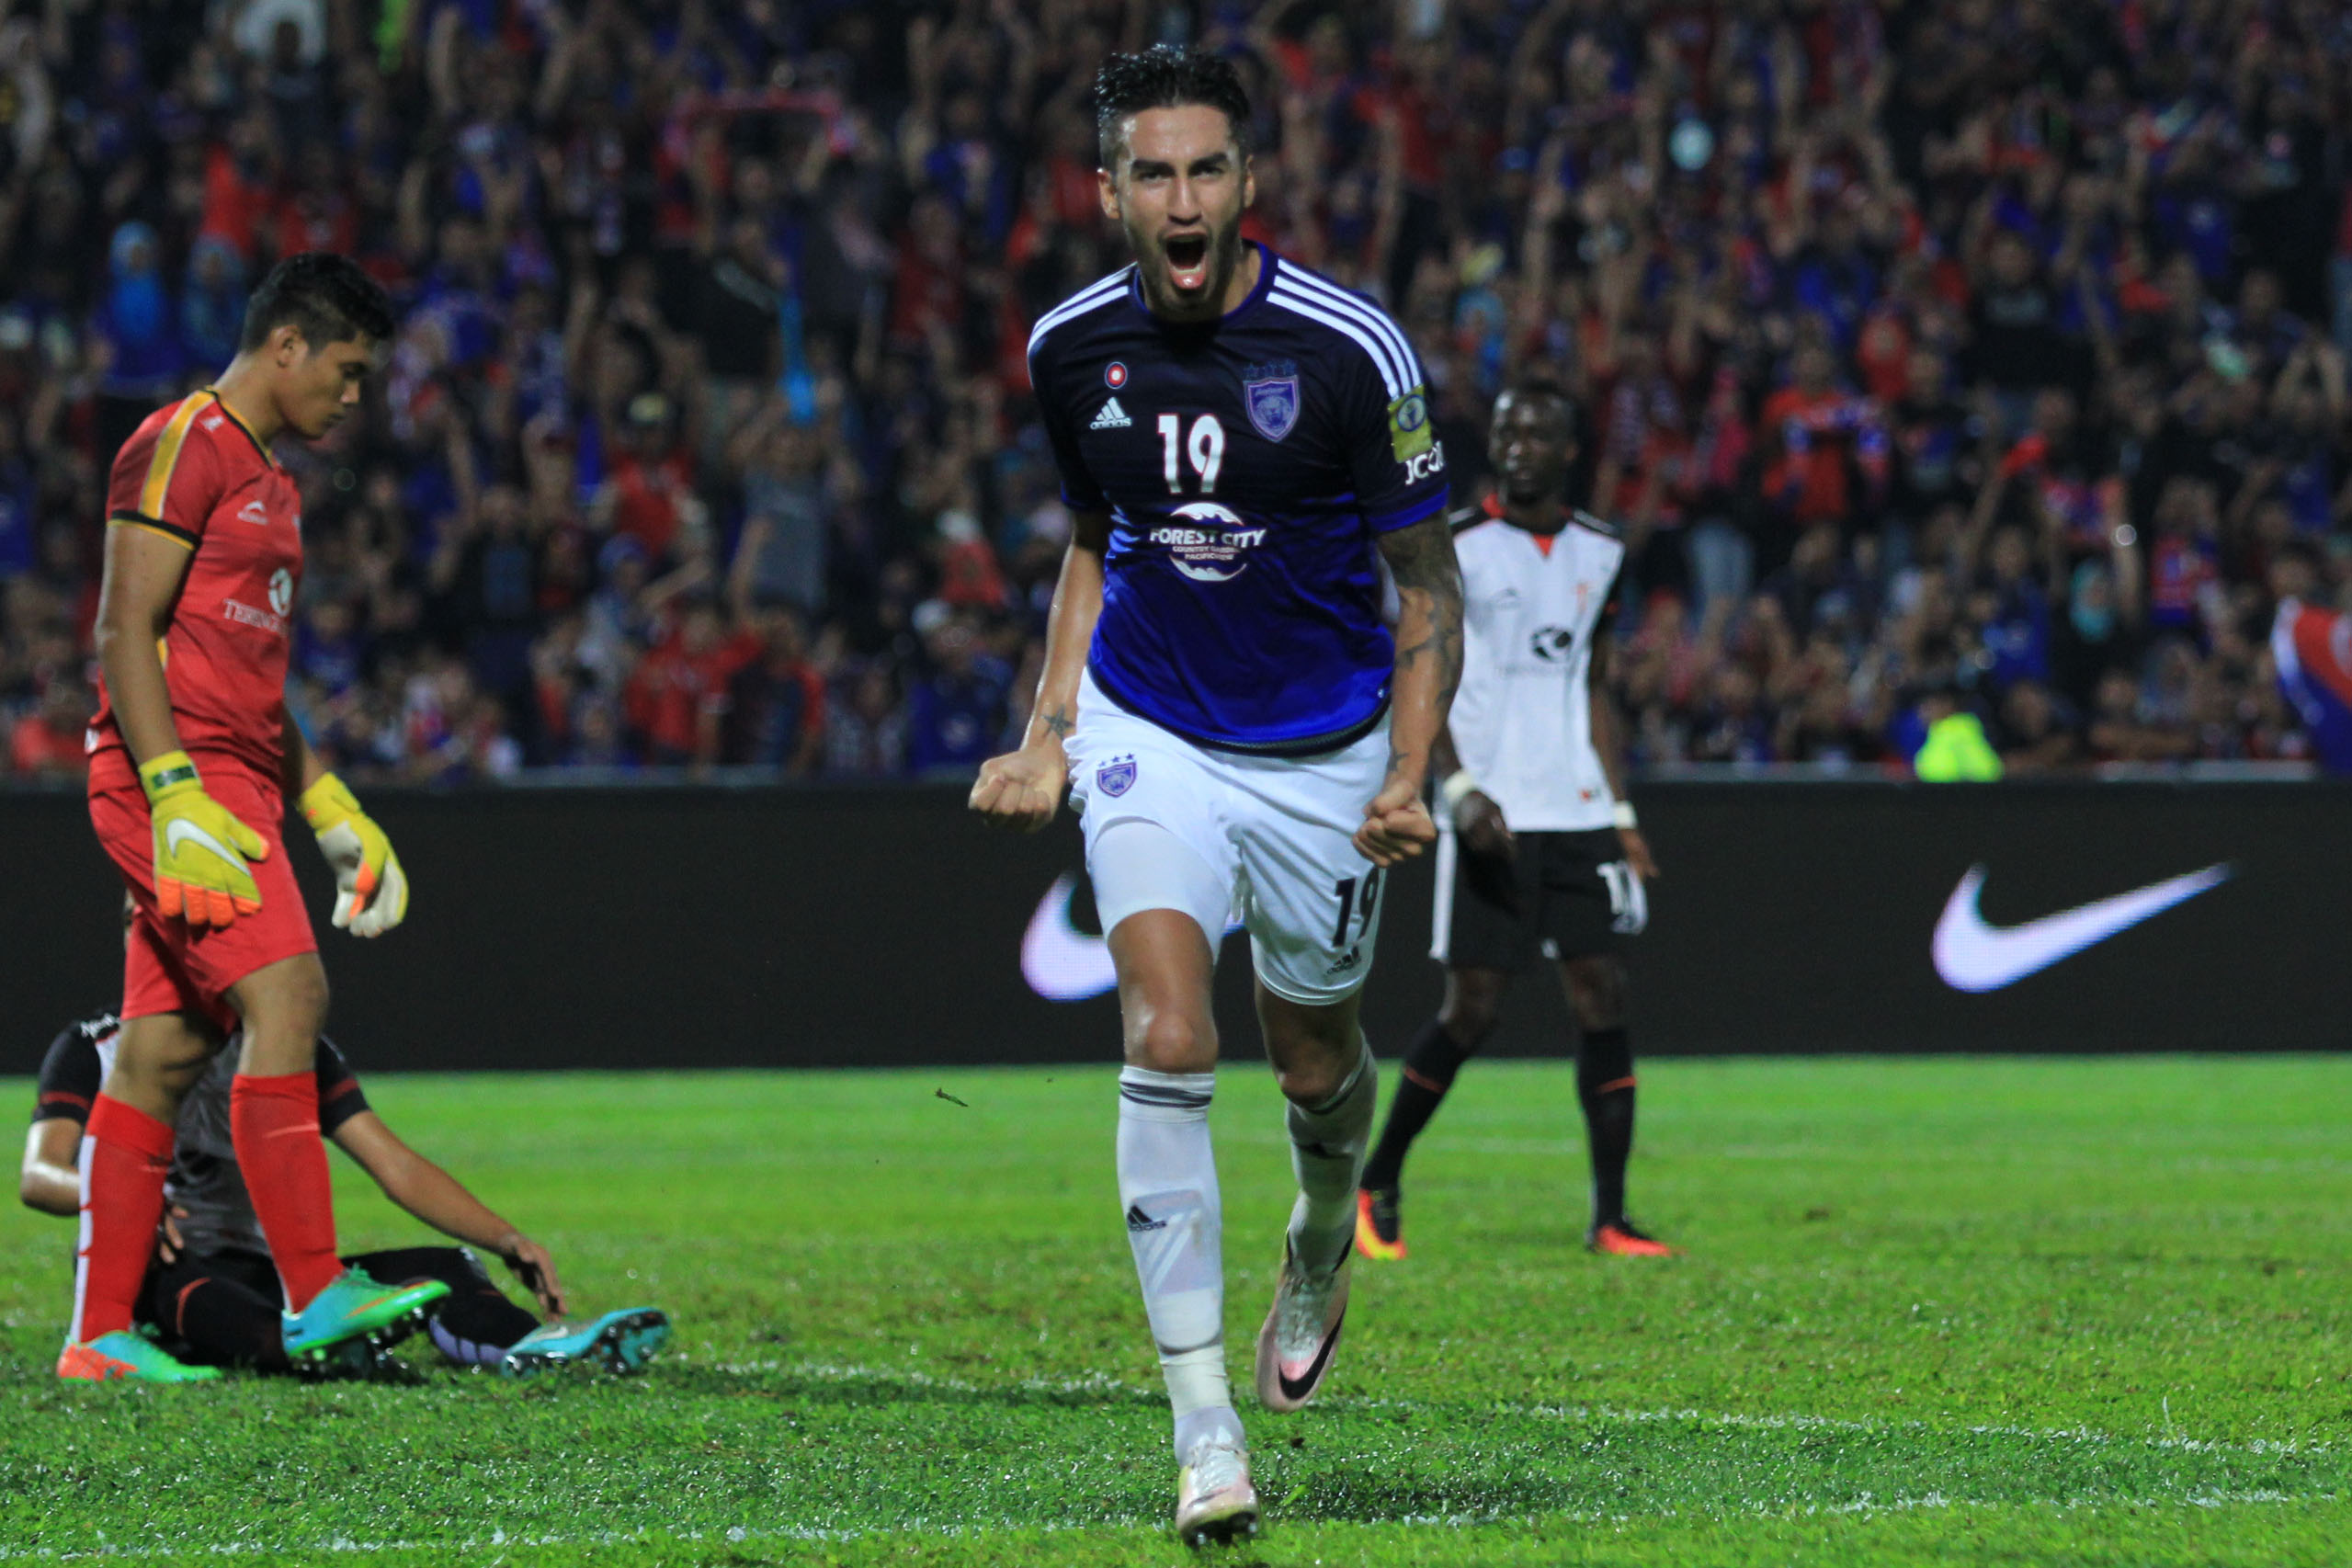 Martin Lucero after scoring his hattrick goal for Johor Darul Ta'zim